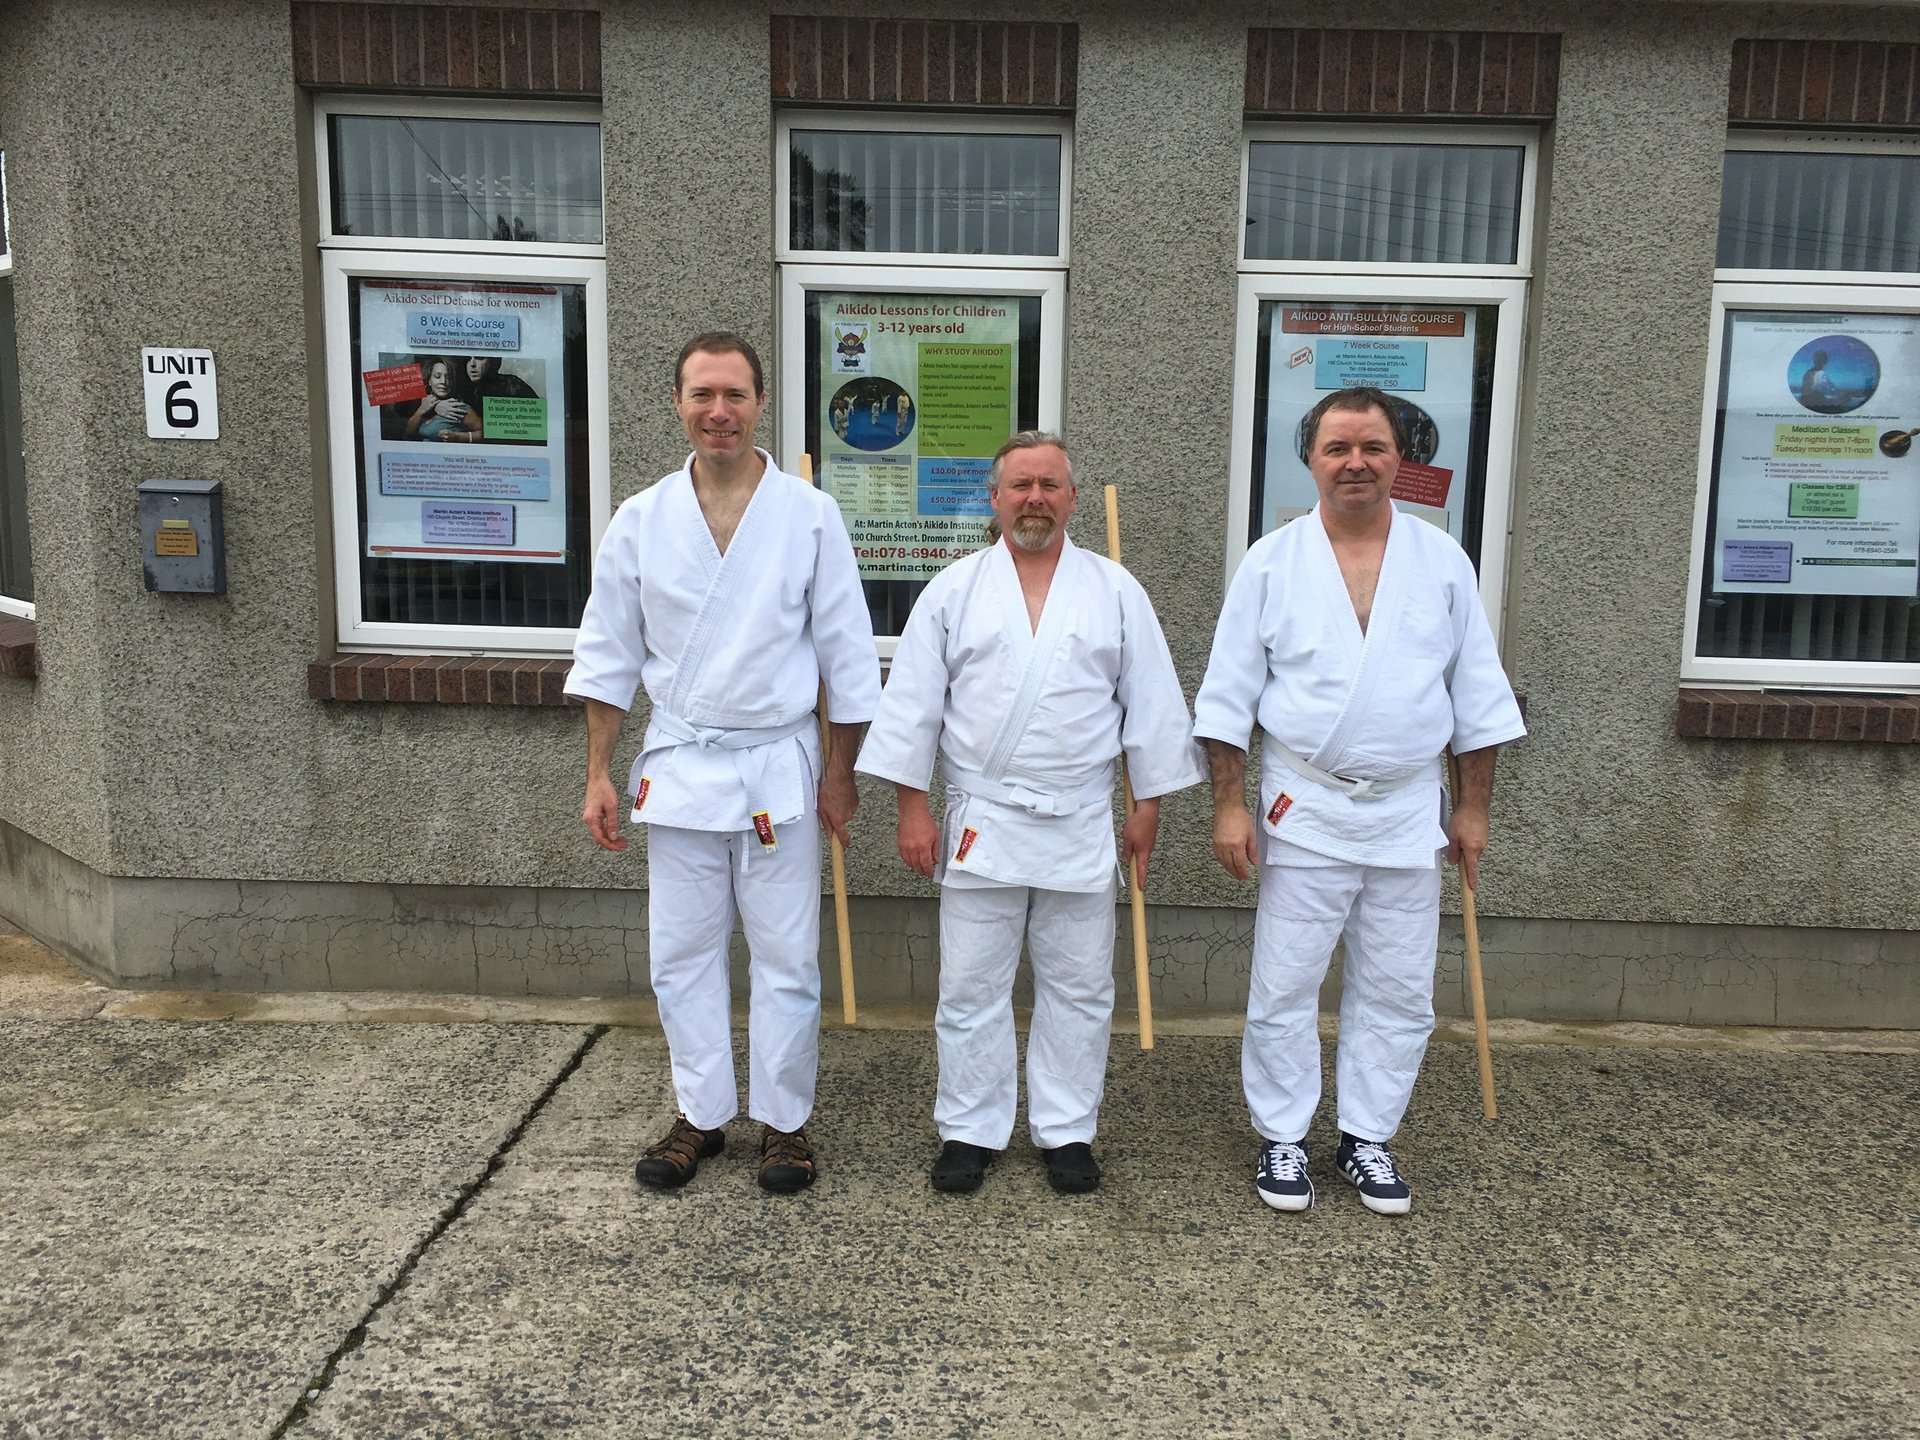 Aikido students Stuart Gilmore, Stephen Millar and Marian Bohacek at th start of the seminar standing outside  the Institute